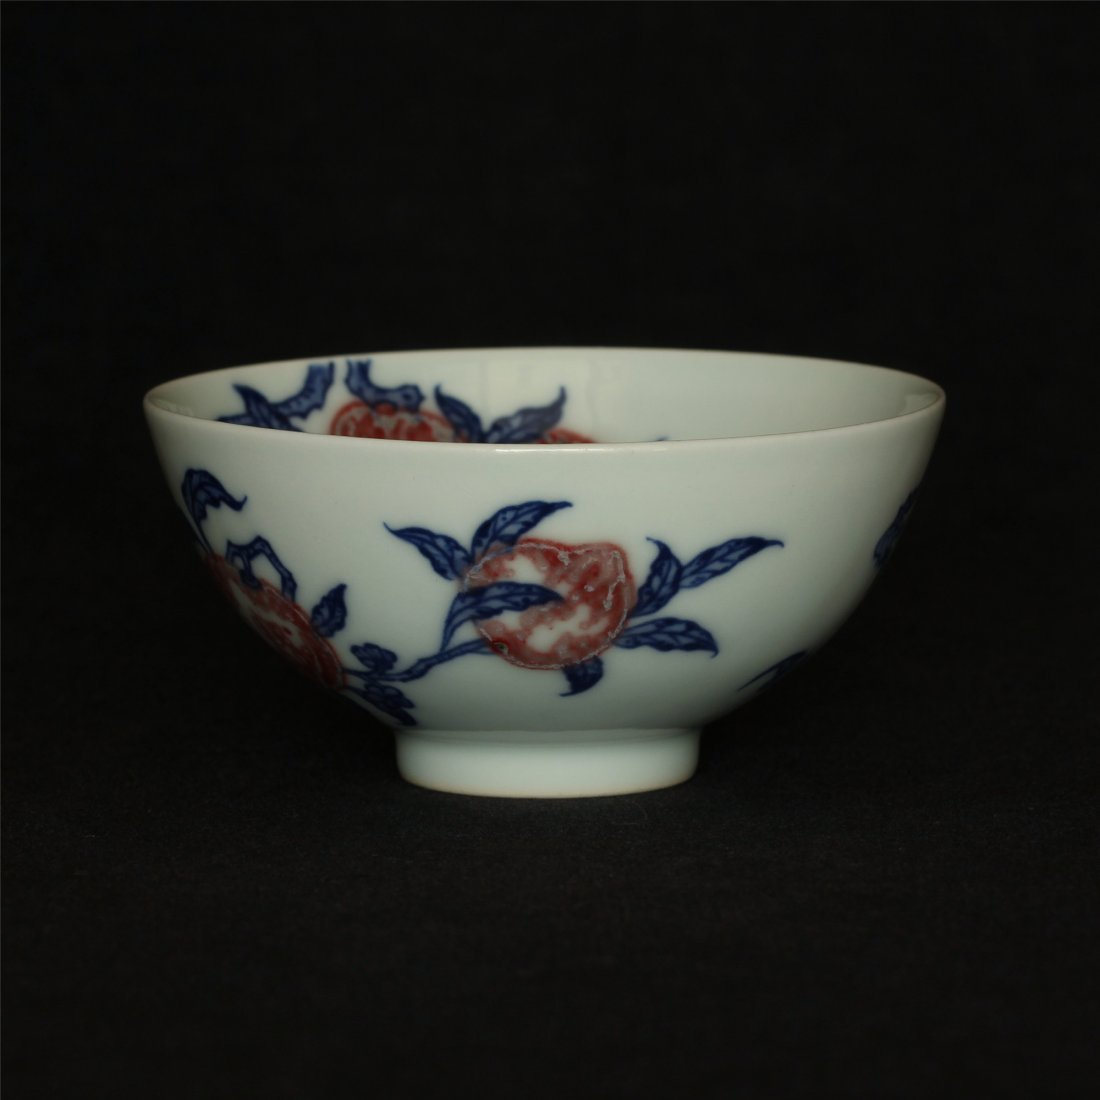 Blue and white & underglaze red porcelain cup of Qing